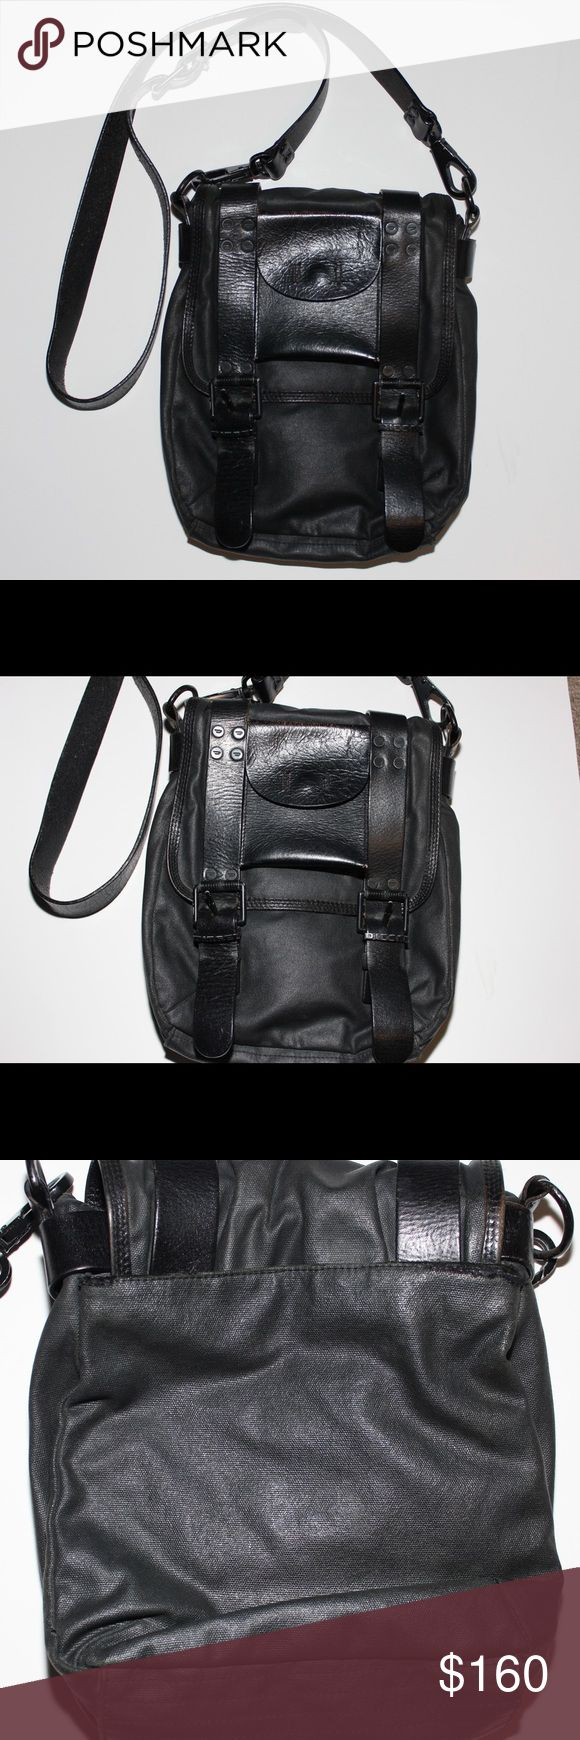 Diesel Unisex Convertible Crossbody Waist Bag So classic and badass! Cool looking thick distressed leather straps, coted canvas material, signature logo on hardware and inner lining, mild fraying on the edges is the back pouch, please see pics, you can in latch the strap fold it through the loop and reattach to wear it as a hands free fanny pack, perfect for concerts and festivals. Diesel Bags